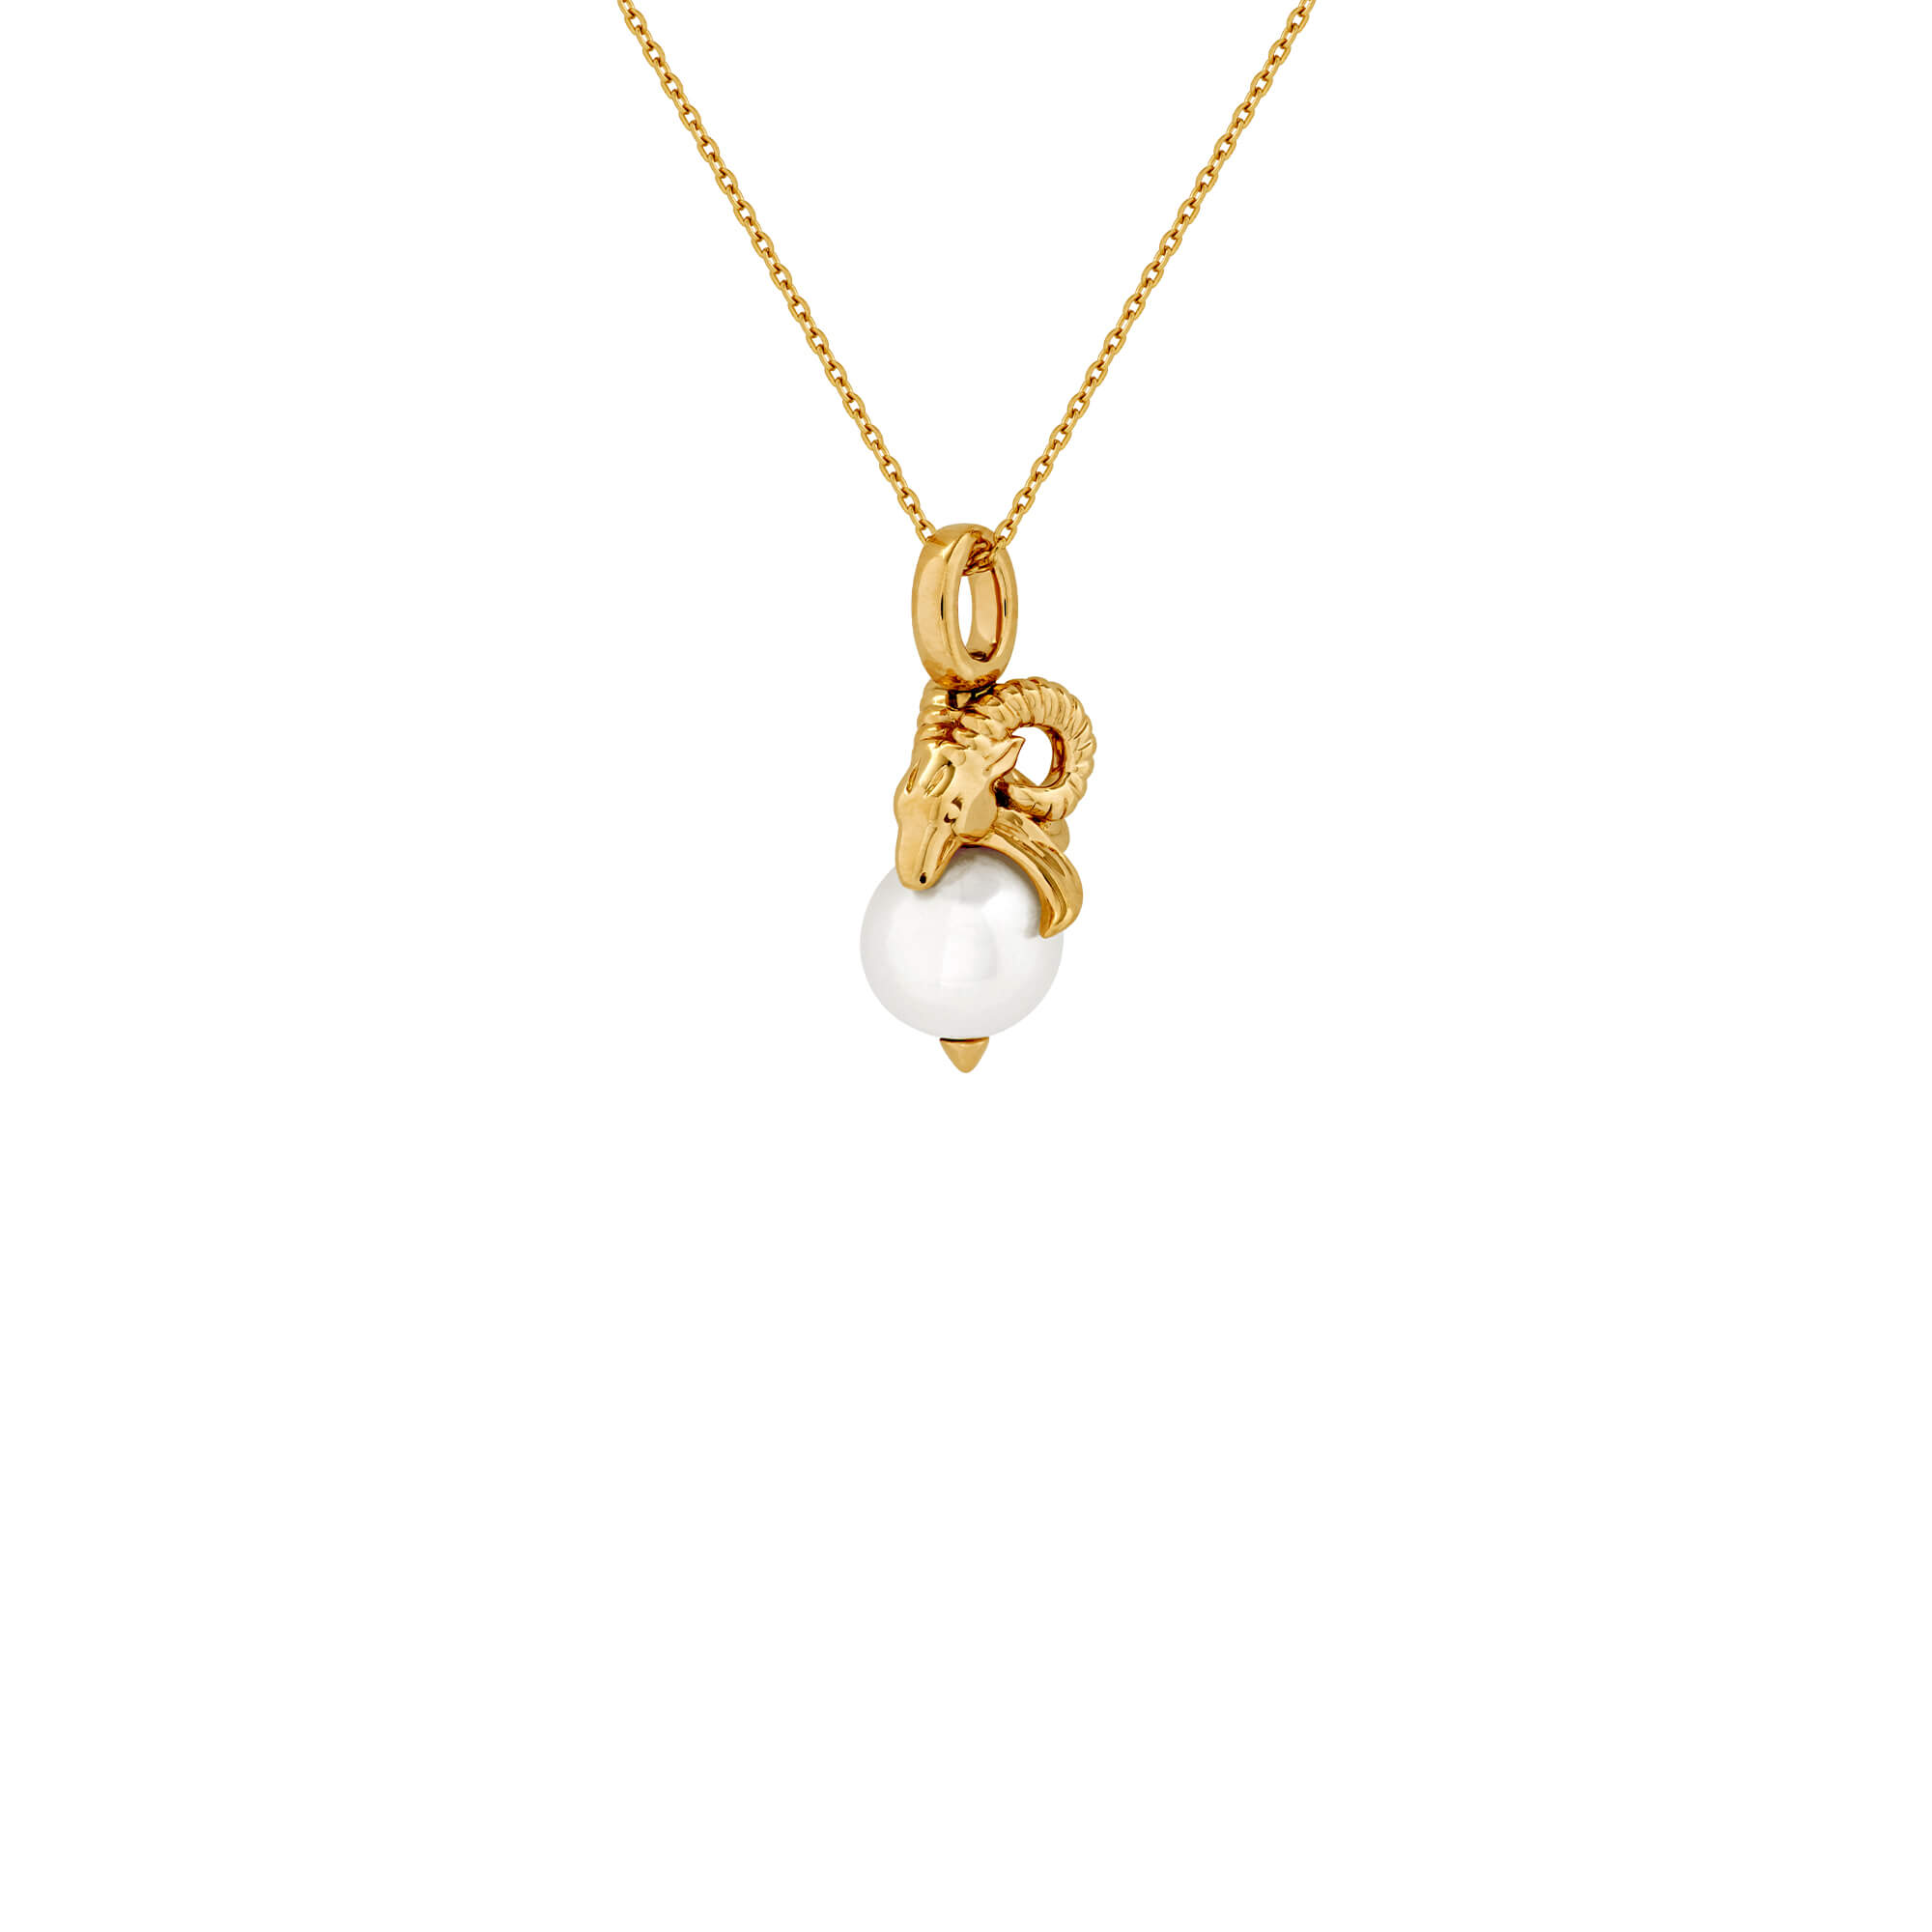 Capricorn Yellow Gold and White Pearl Necklace | Astro Balls